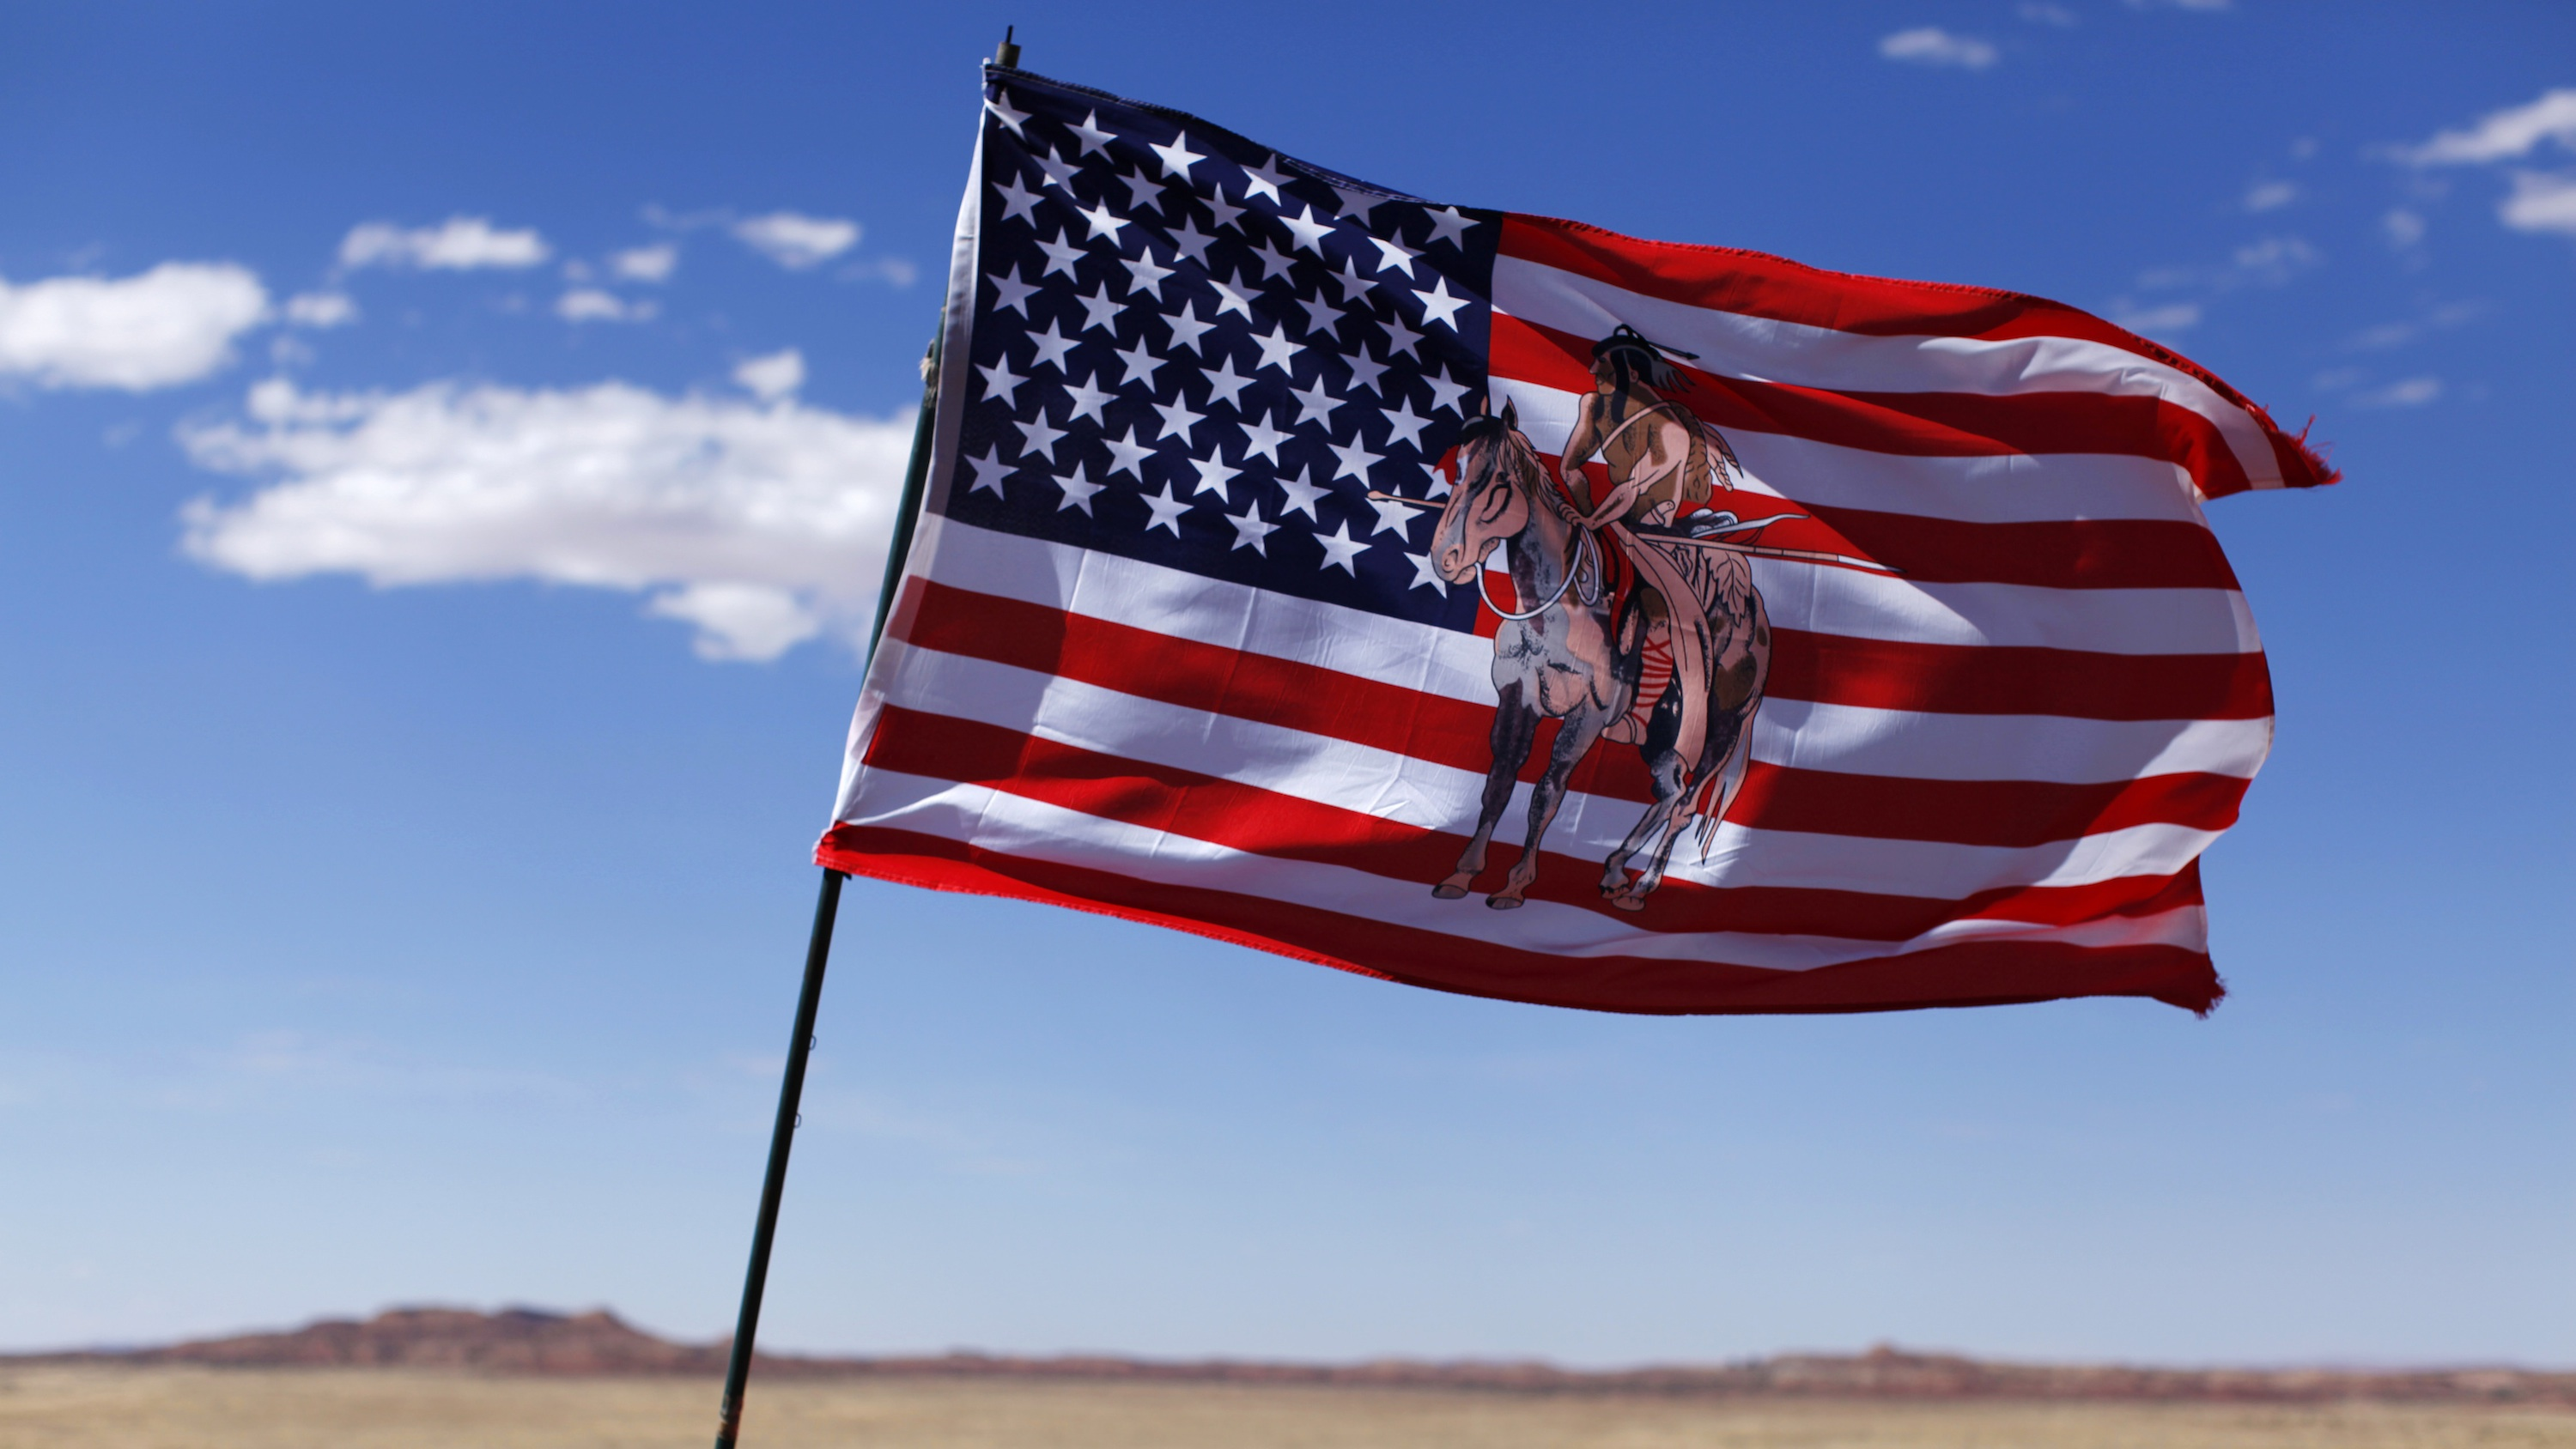 An embroidered American flag flies next to a jewelry stand on a Navajo reservation in Arizona.